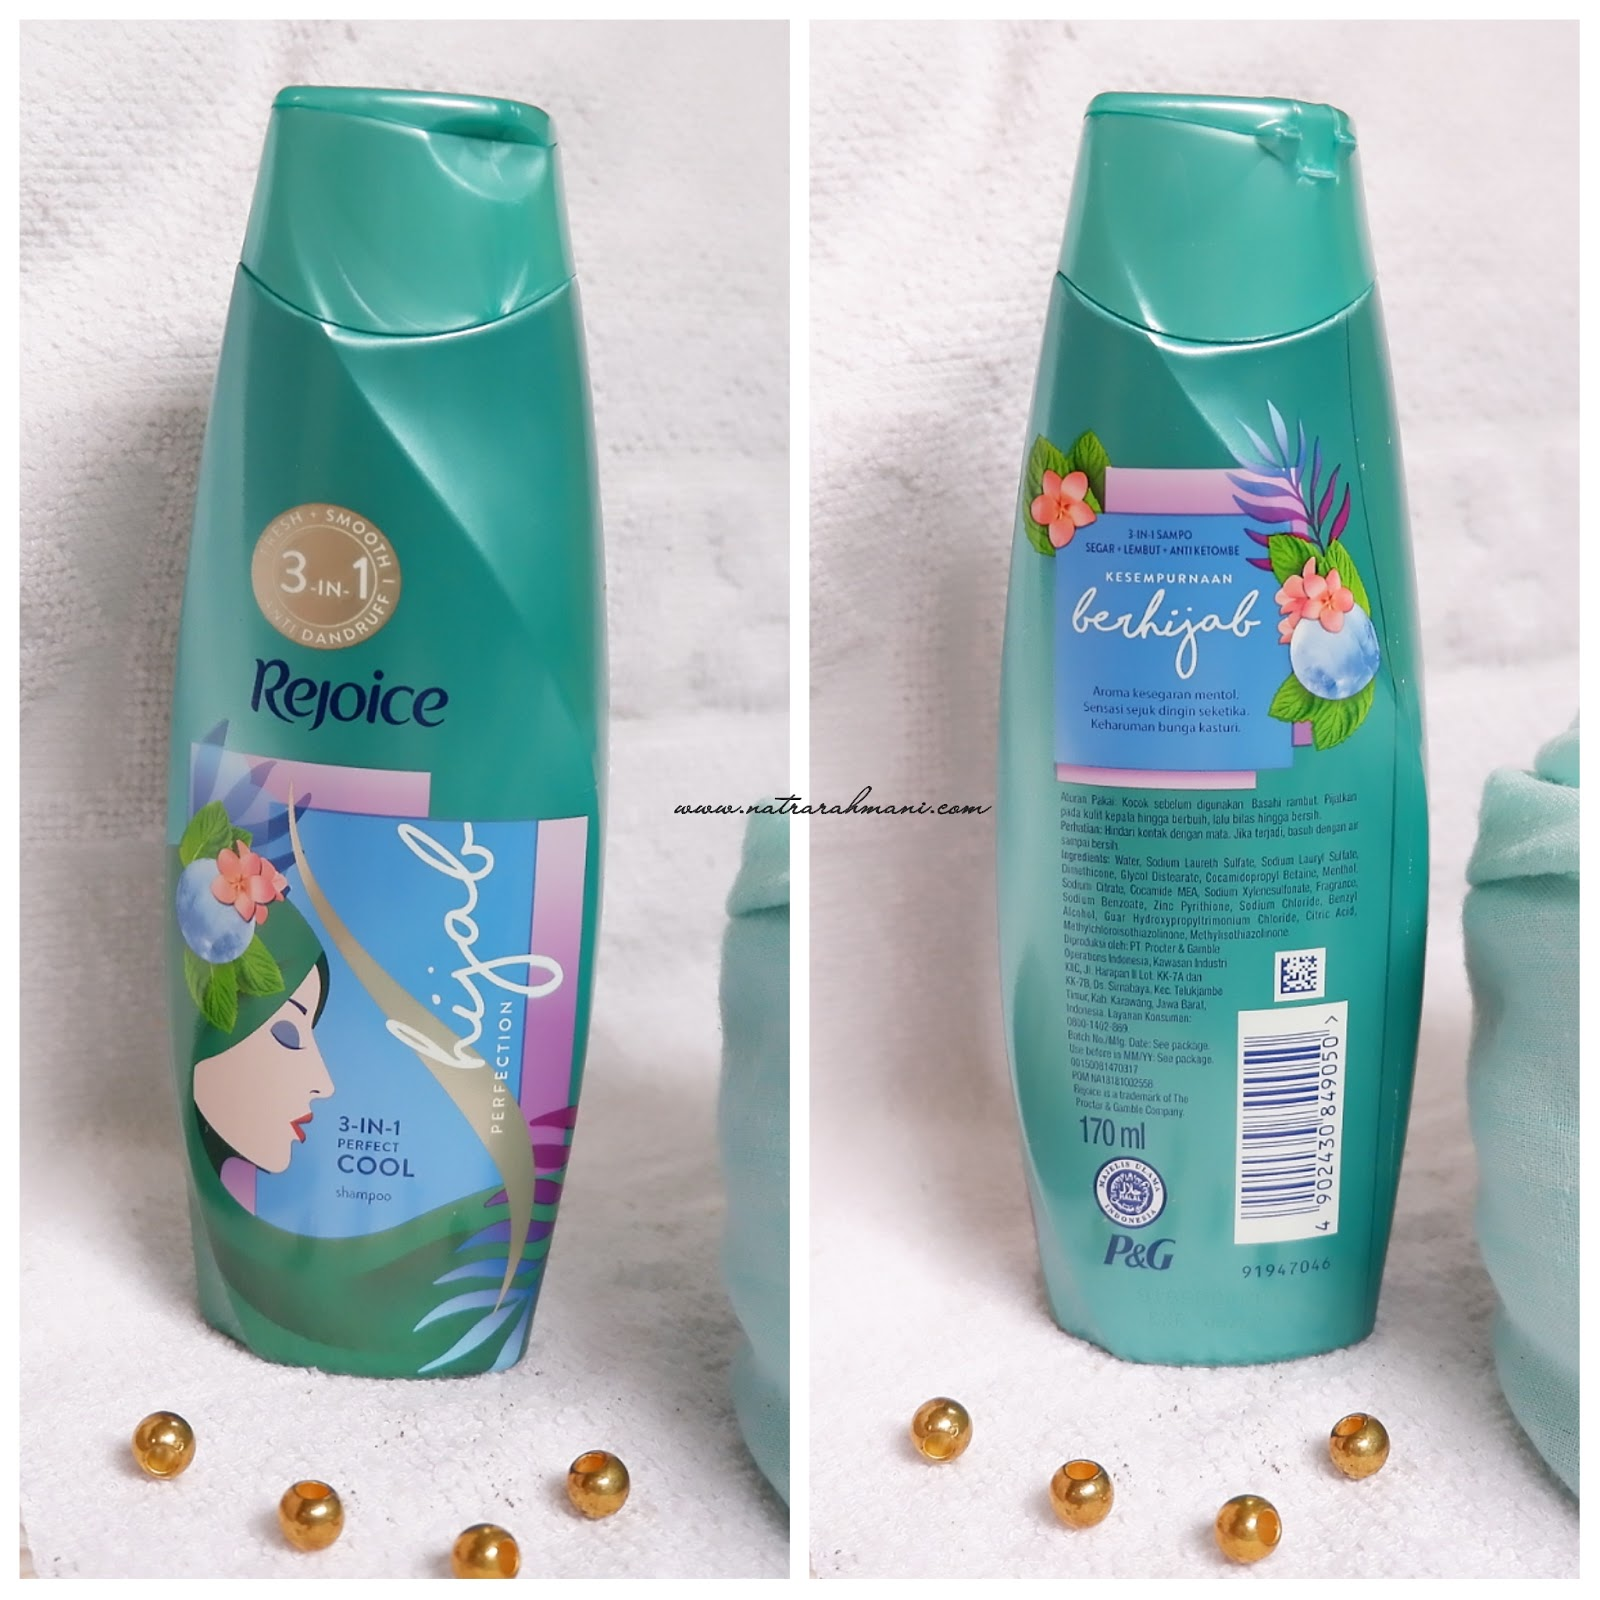 review-rejoice-perfect-cool-shampoo-natrarahmani